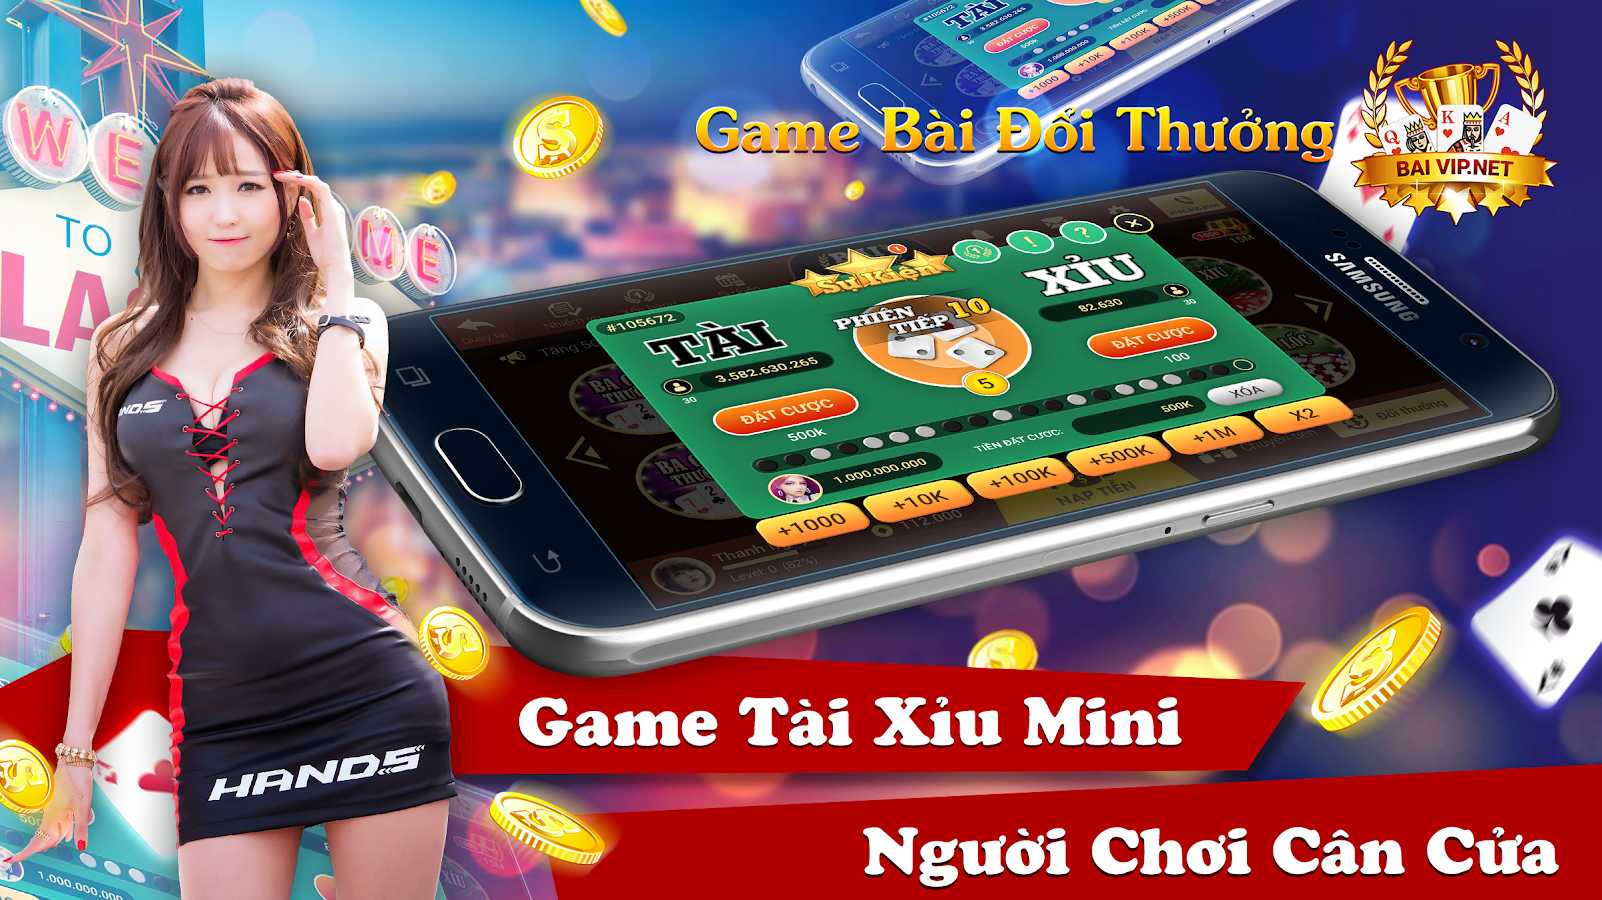 Game Bài Vip Online Screenshot 0